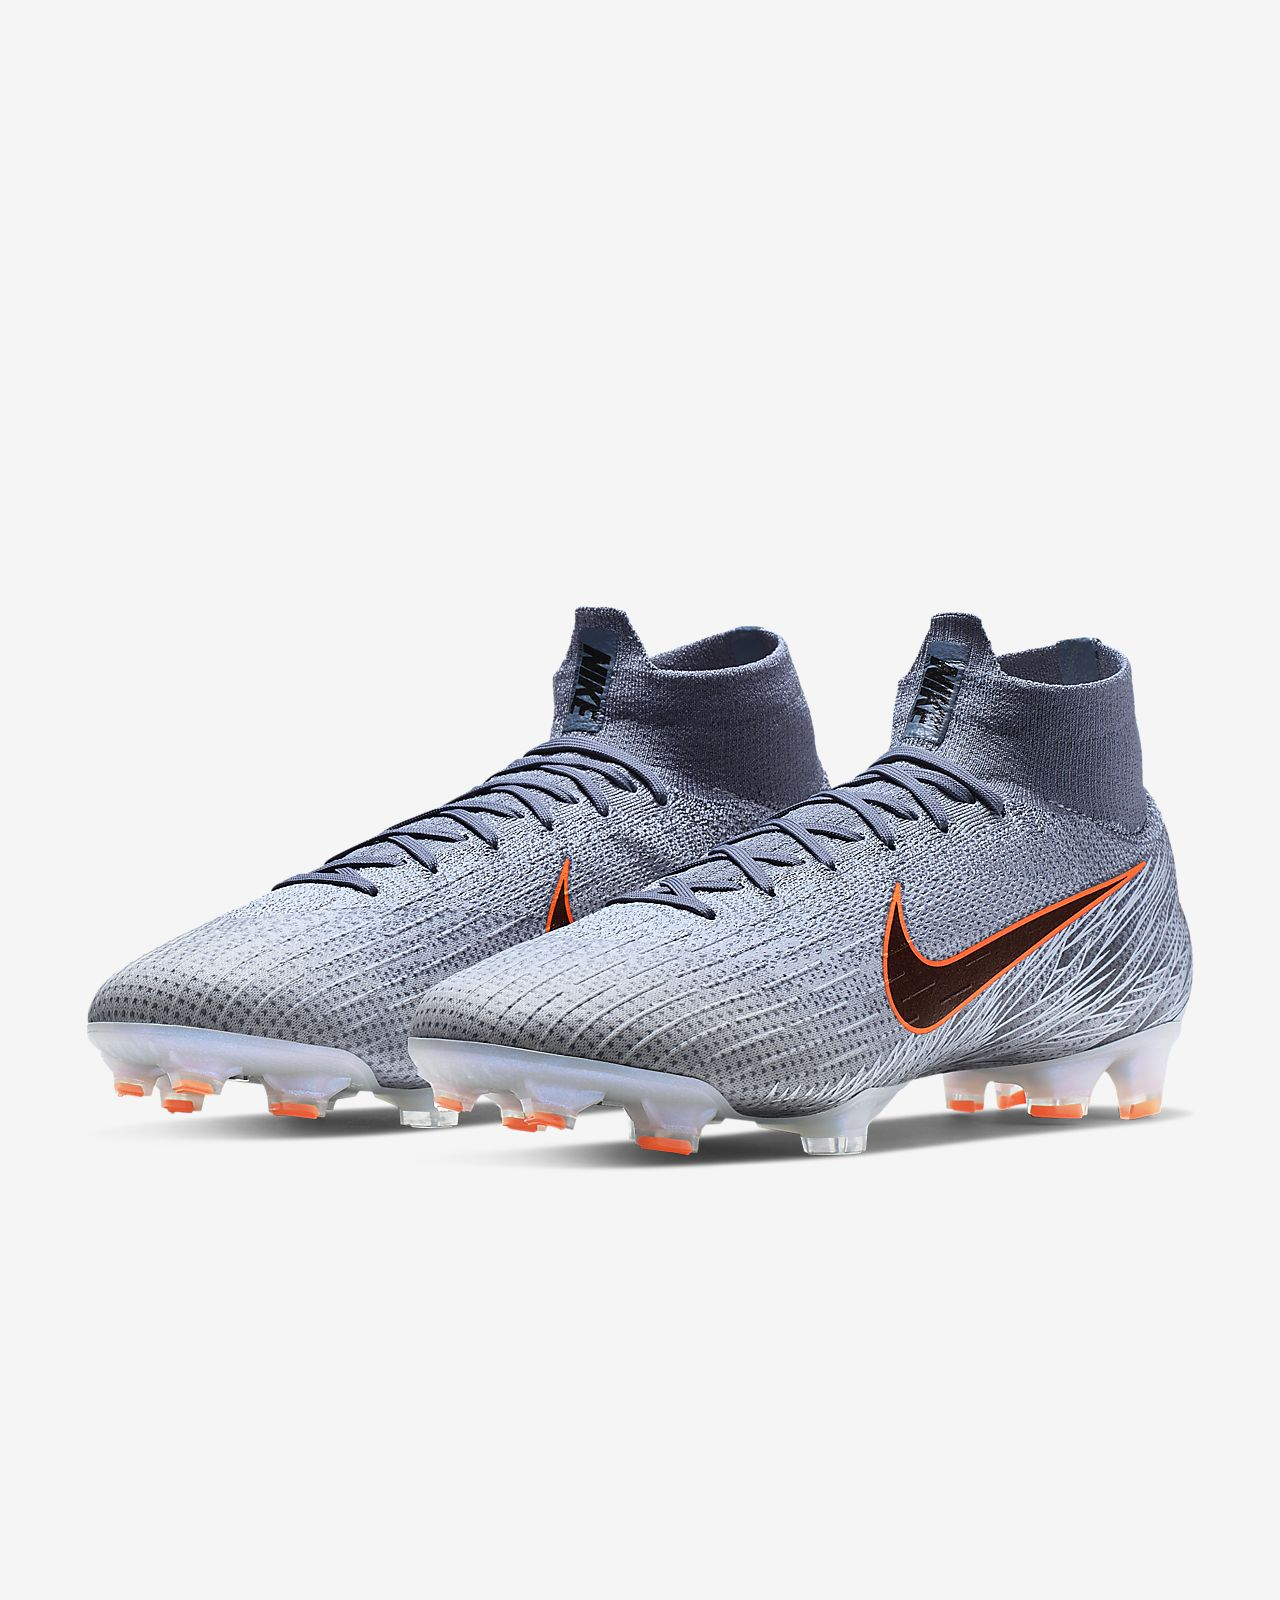 outlet store 68b31 f6794 ... Nike Superfly 6 Elite FG Firm-Ground Soccer Cleat